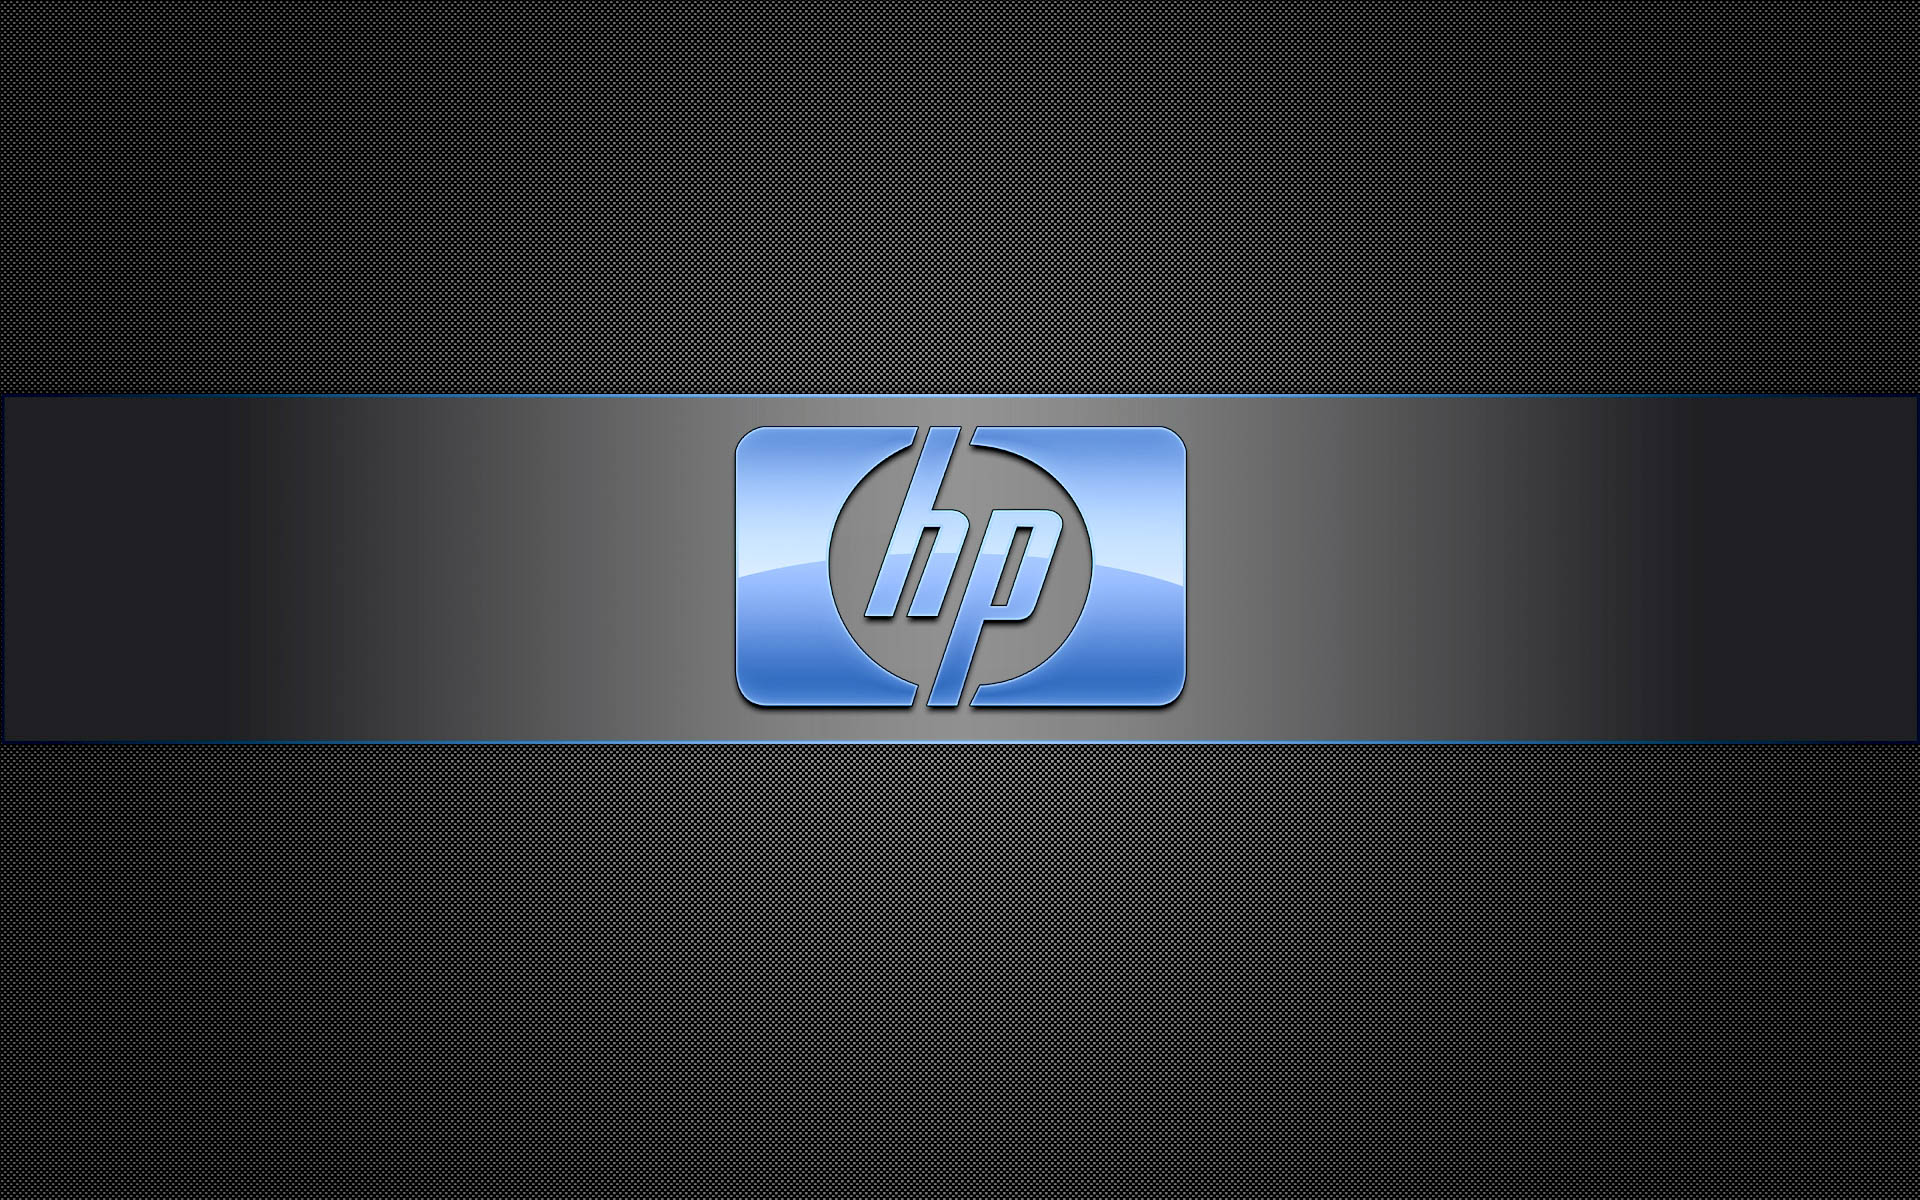 Hewlett Packard Hd Pictures Hd Wallpapers In High Qulaity All Hd